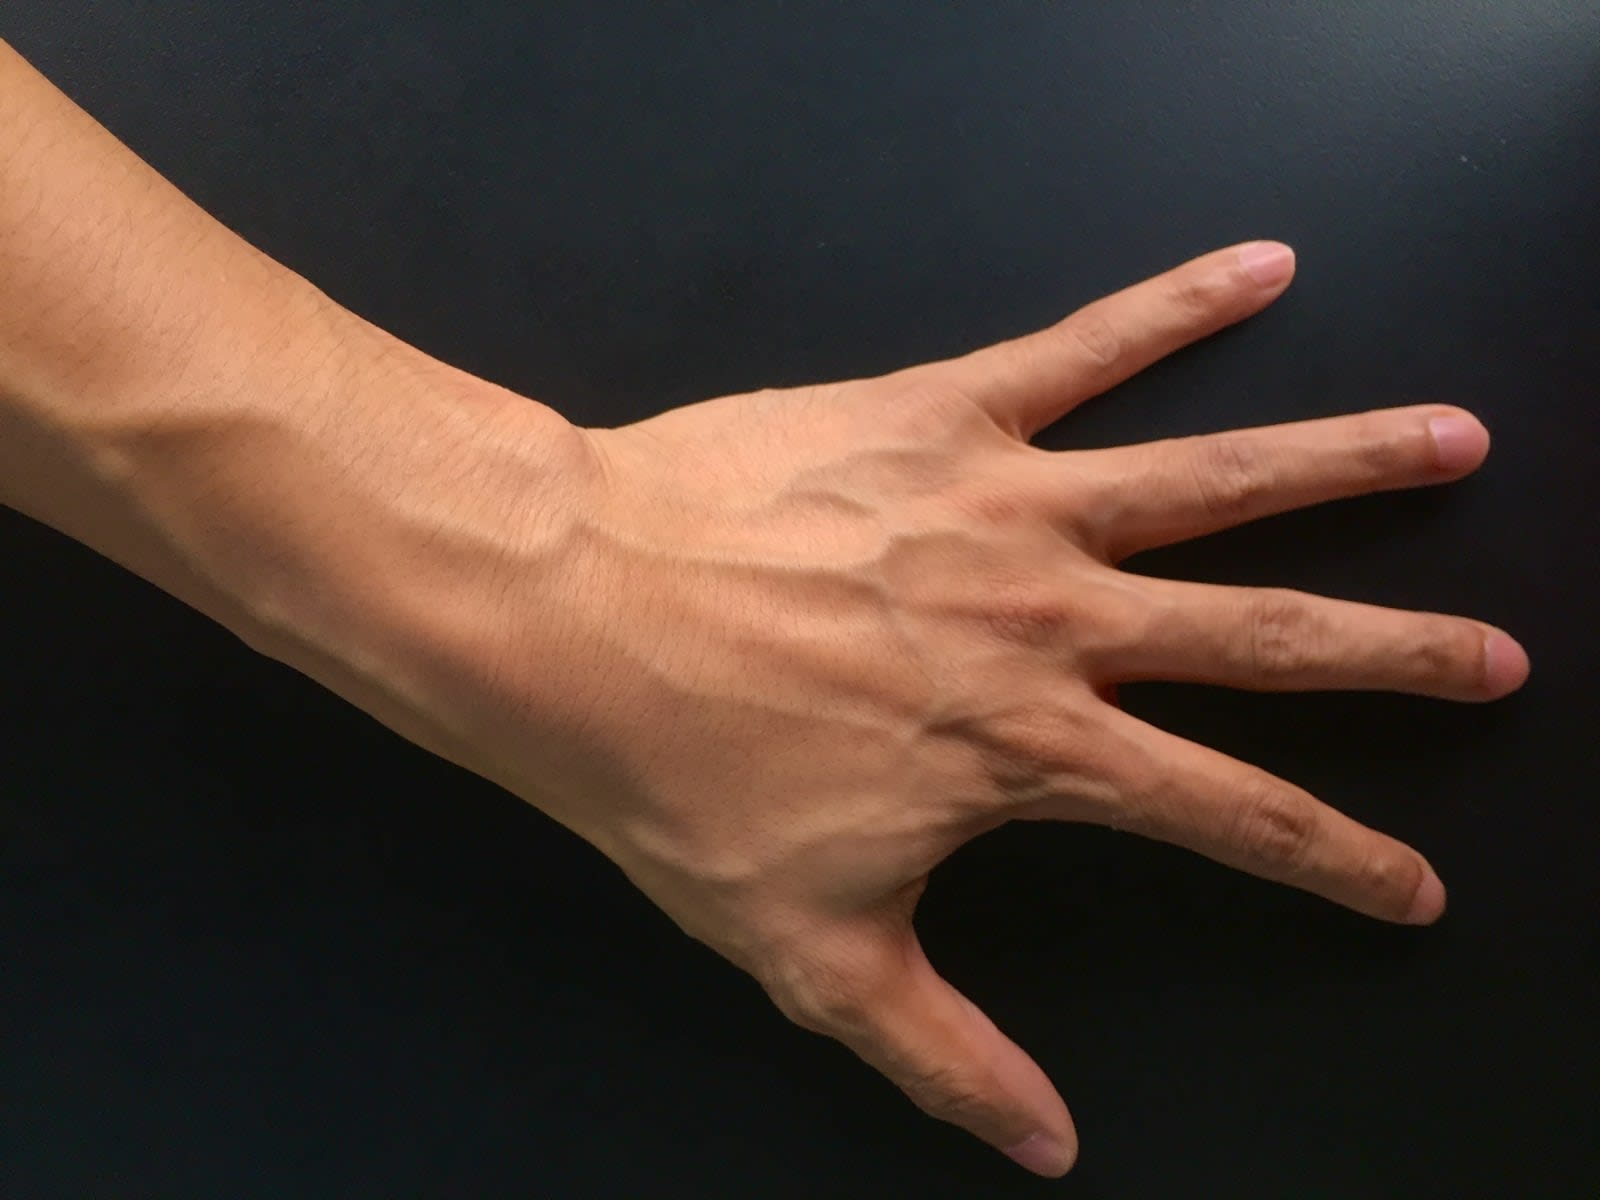 hackers defeat vein authentication by making a fake hand